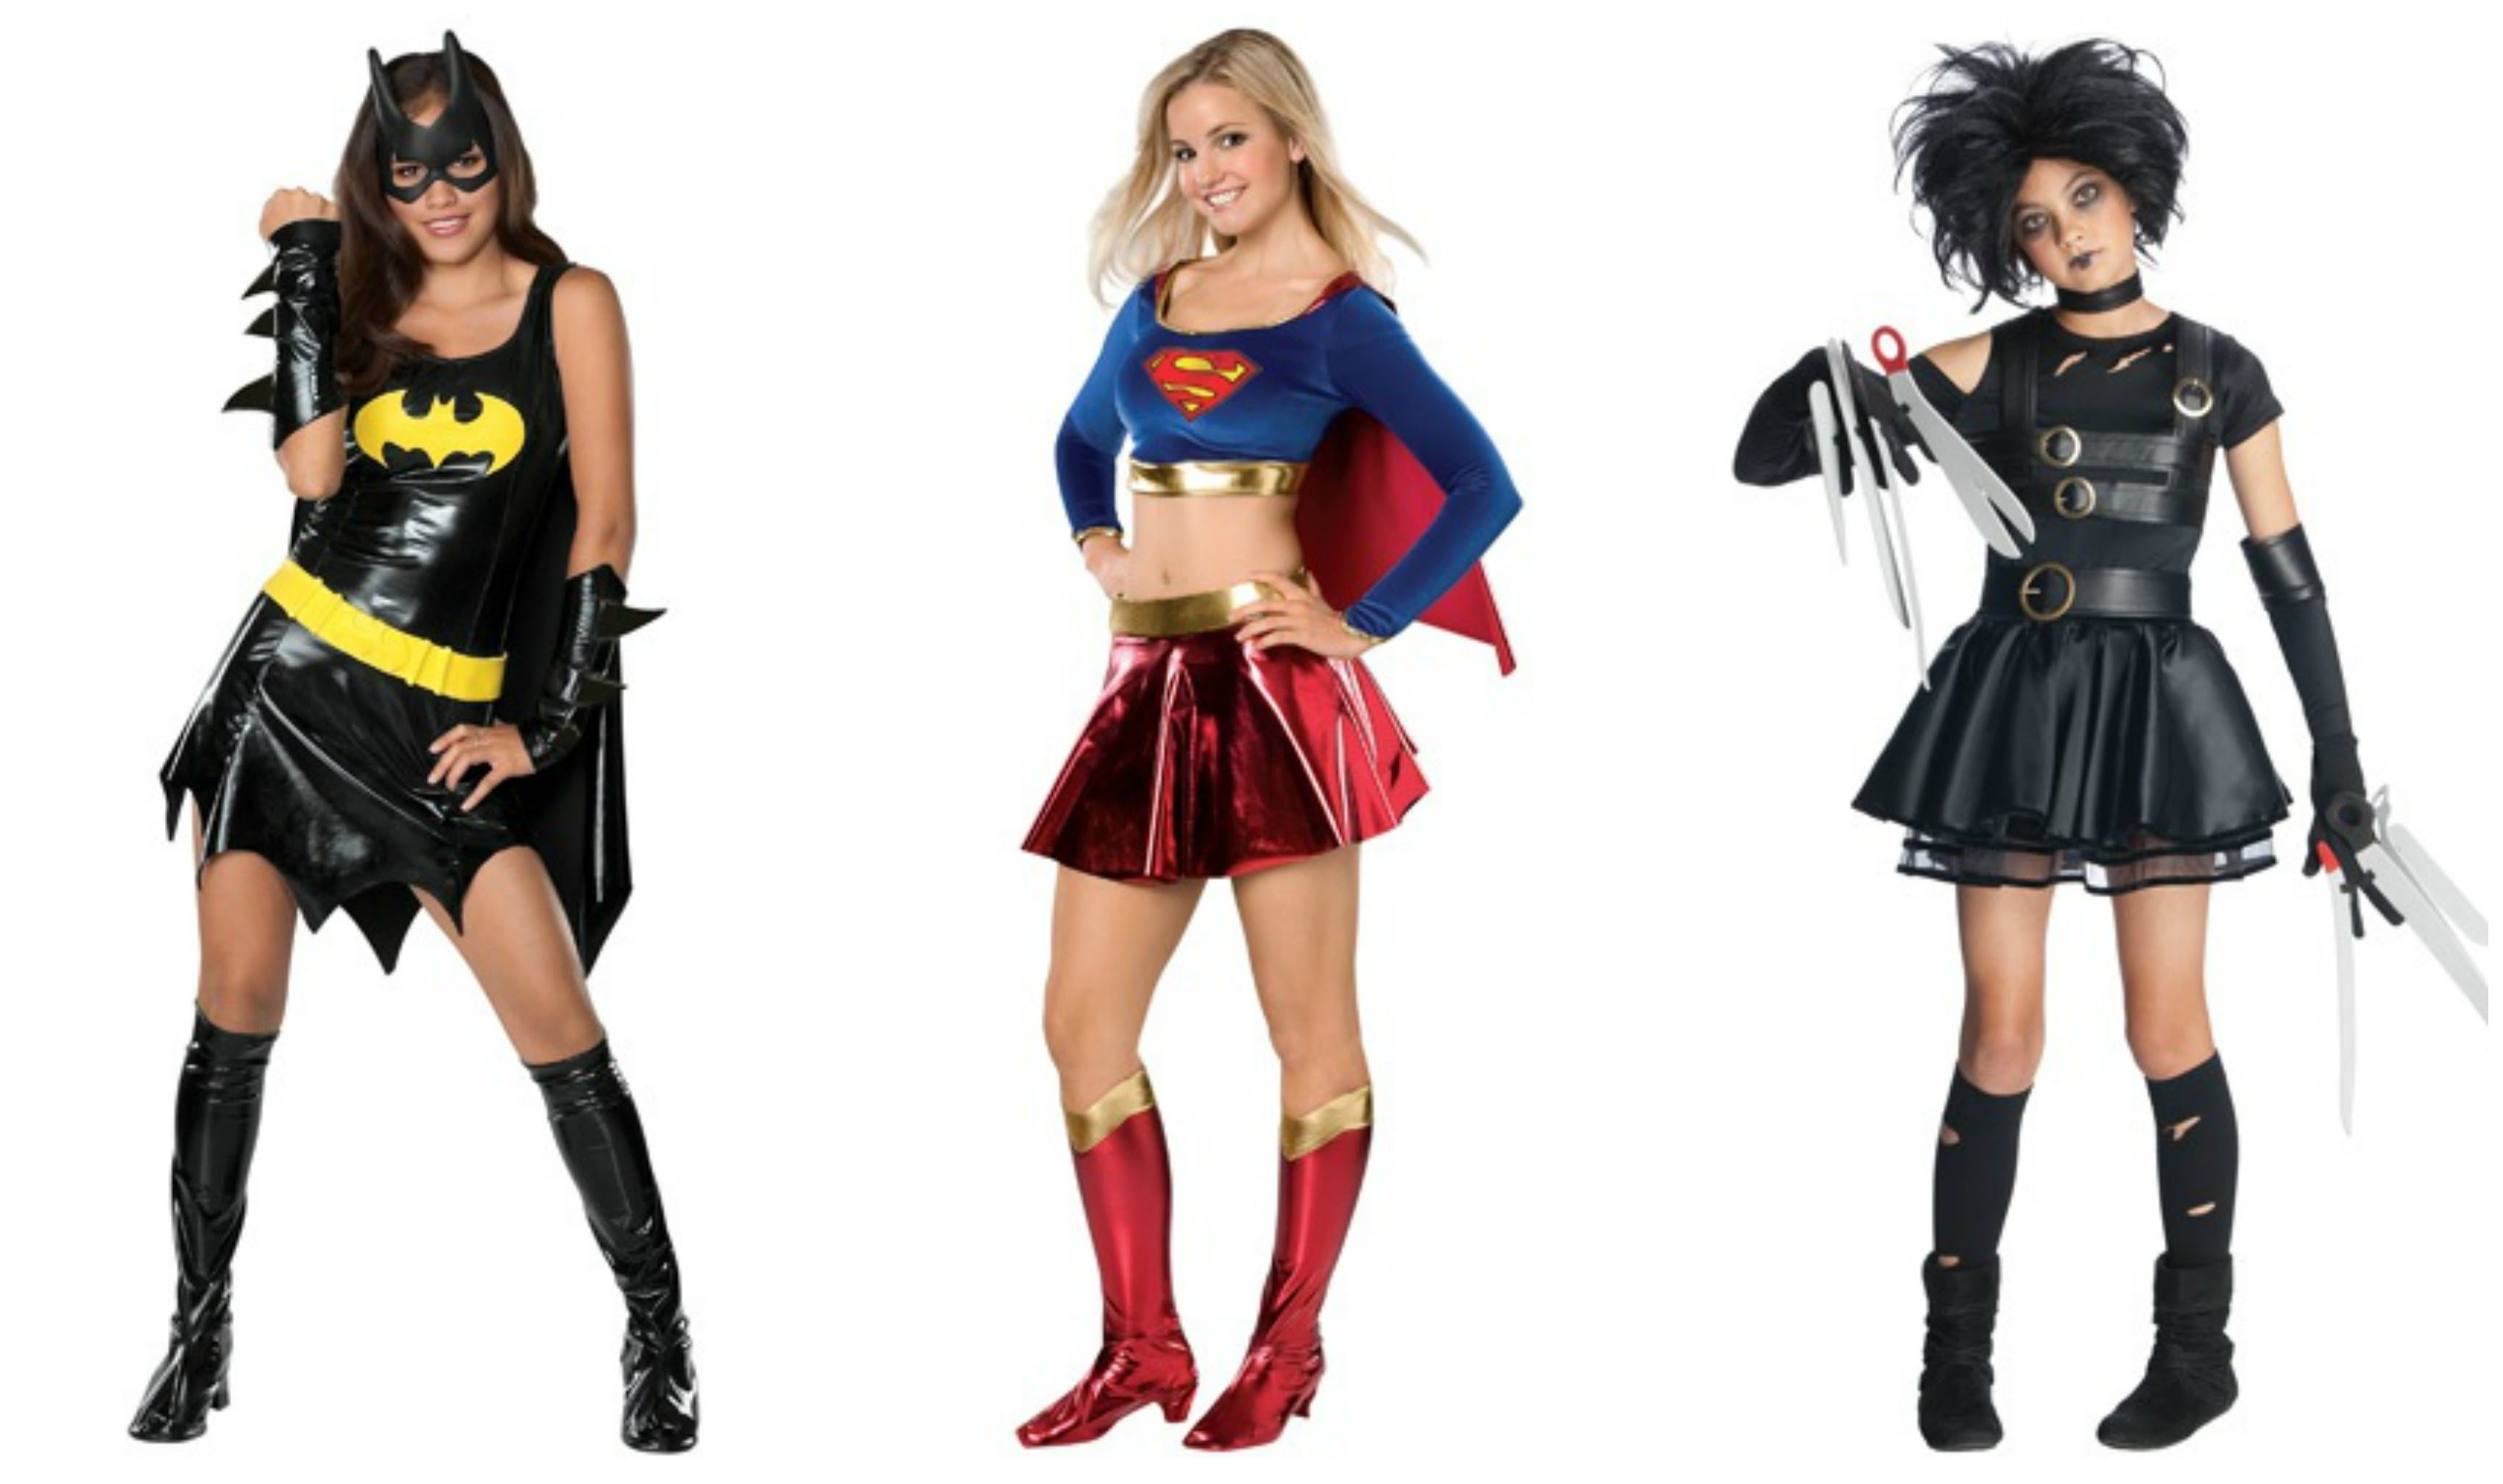 10 most popular cute halloween costume ideas for teenage girls halloween costume ideas for teens girls